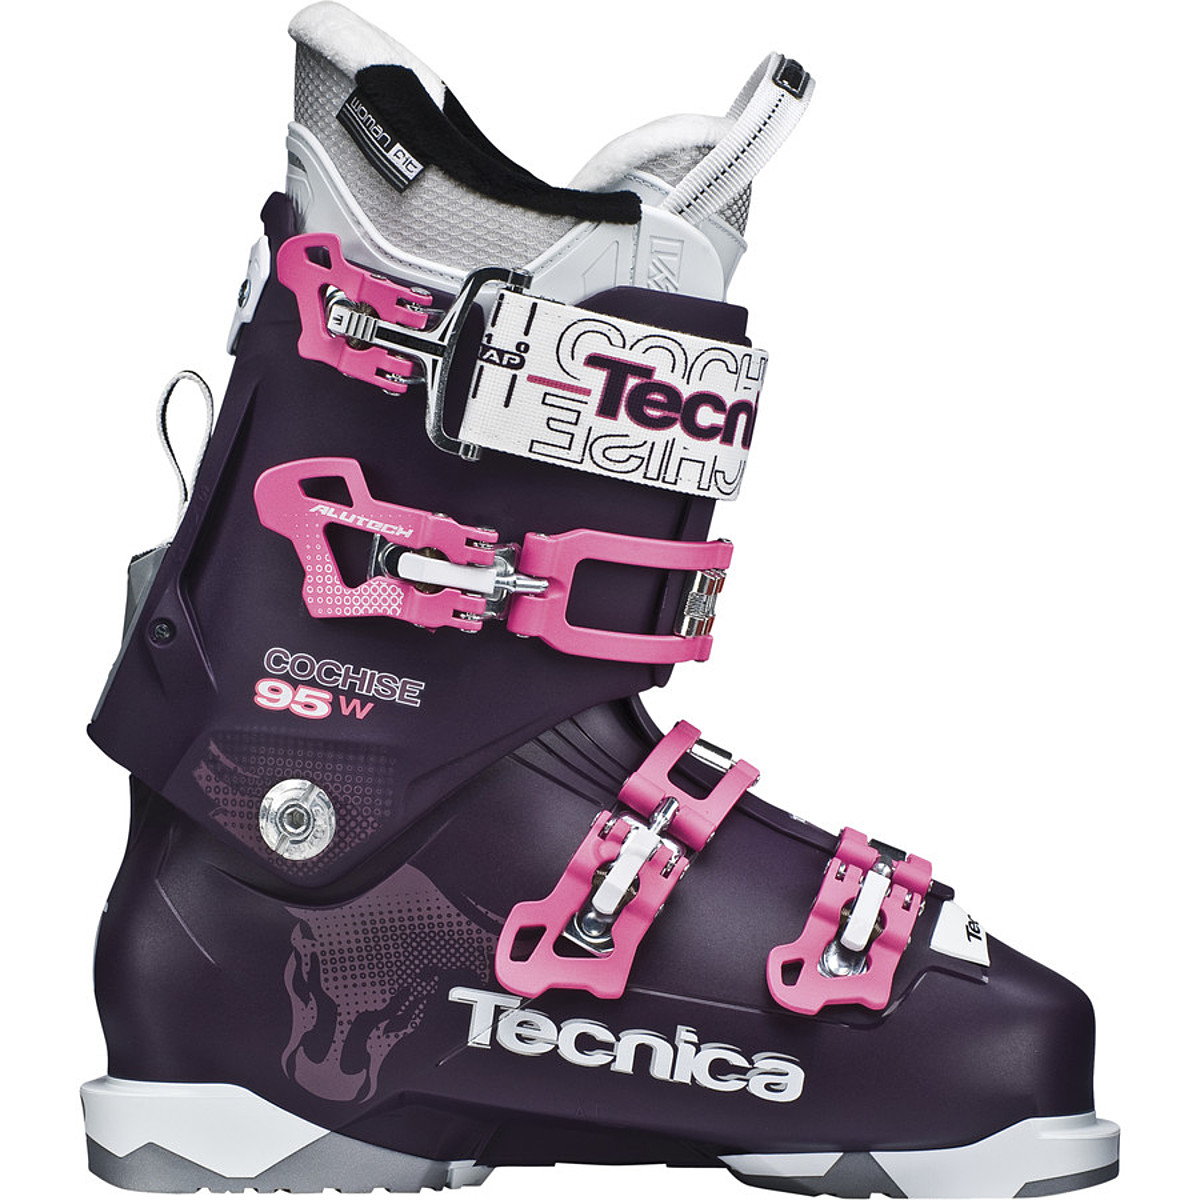 photo of a Tecnica alpine touring product